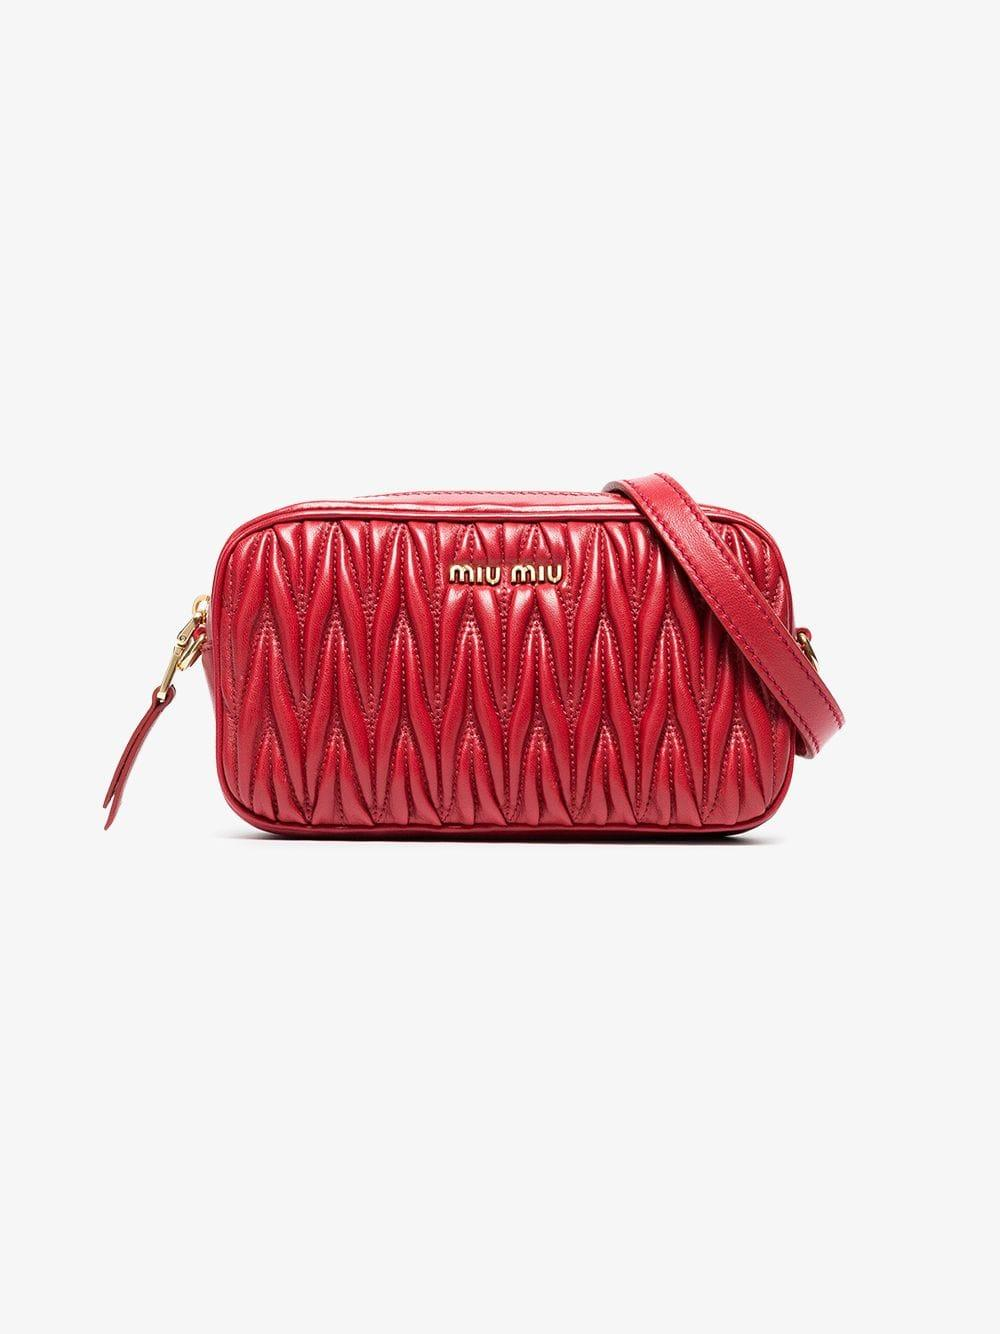 7449a4c9dc7 Lyst - Miu Miu Matelassé Leather Belt Bag in Red